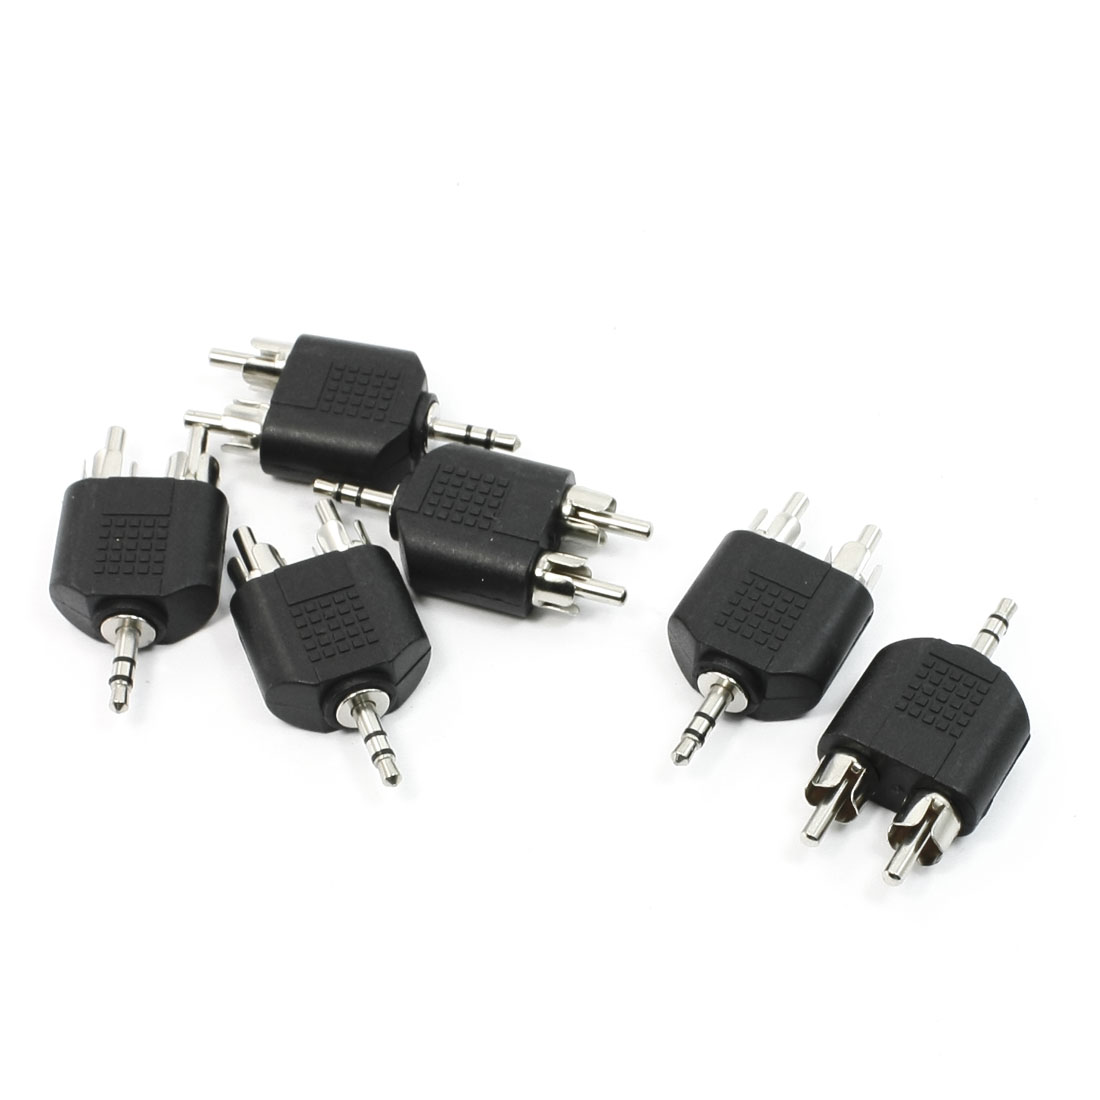 6 x Staight Shape 3.5mm Stereo Audio Male Plug to 2 RCA Male Connector Adapters